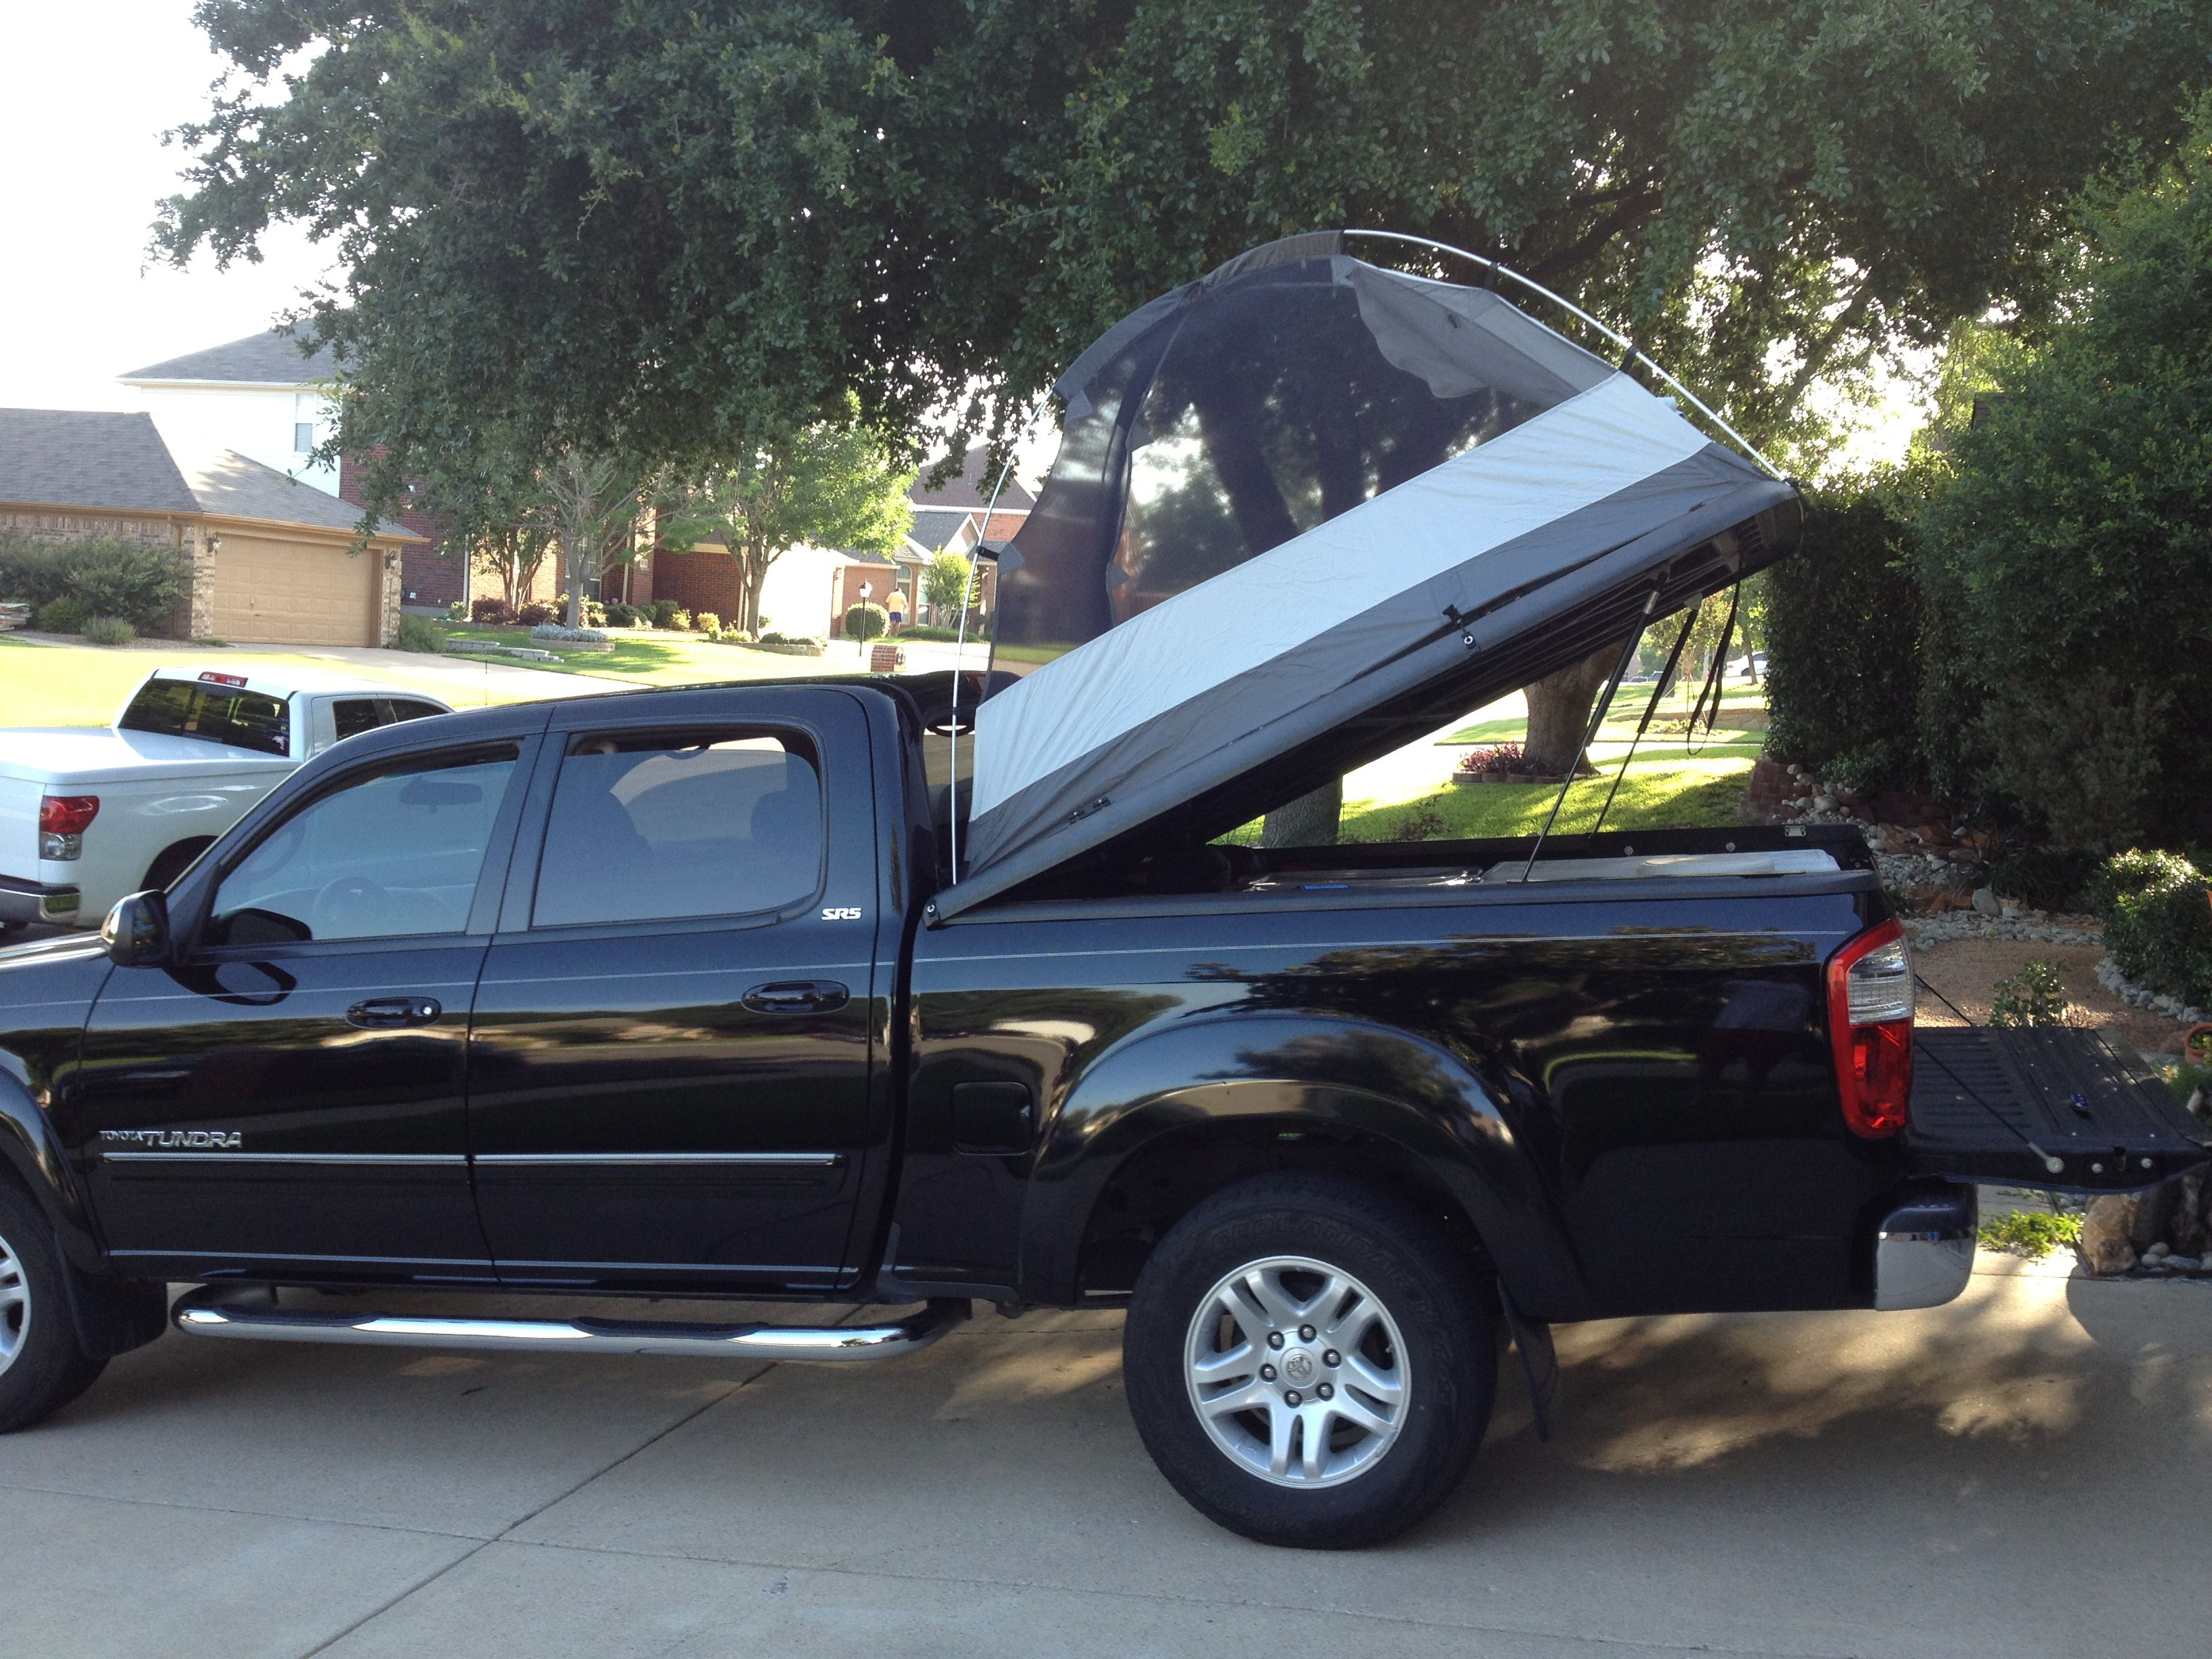 & tonneau tent | Camping | Pinterest | Tents Camping and Truck camping